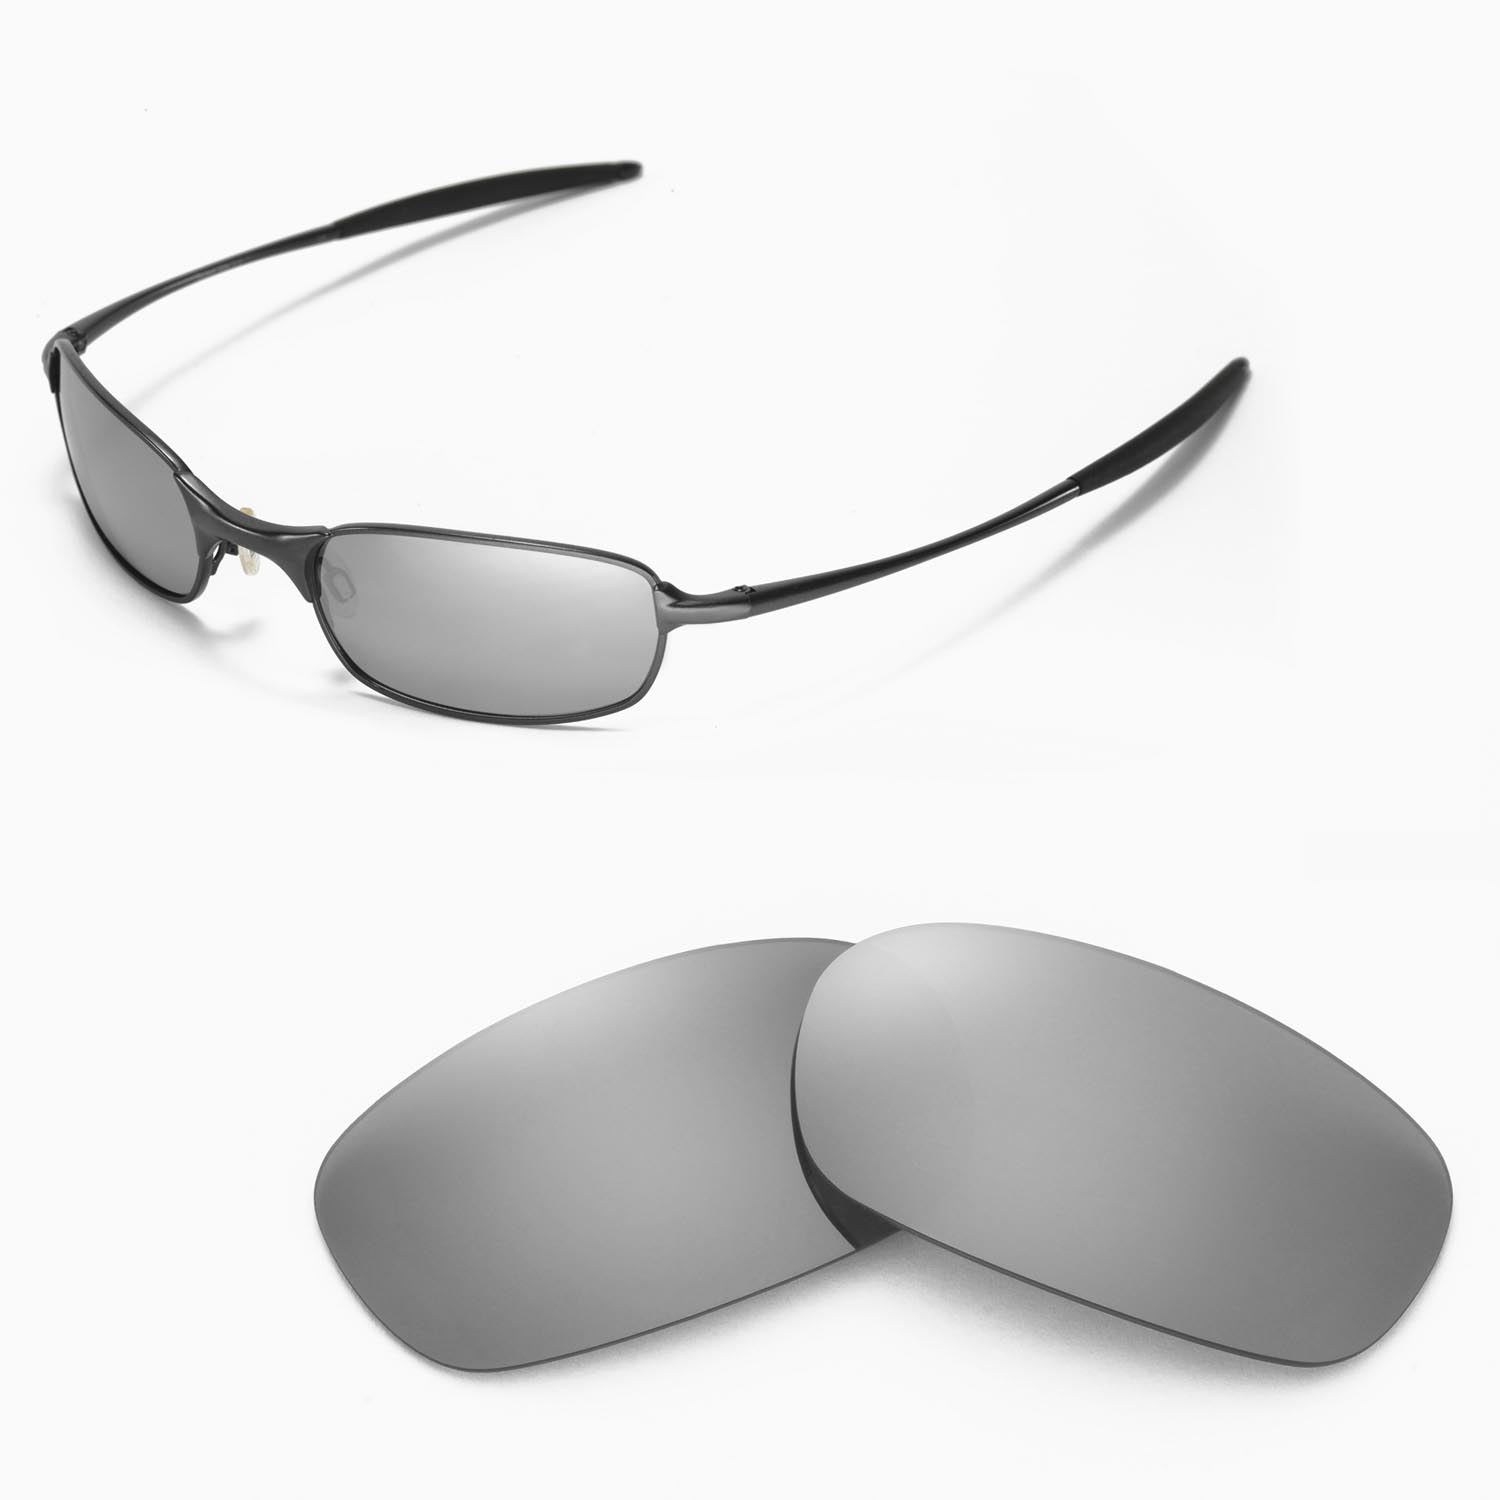 c65cdc0259 Details about New Walleva Polarized Titanium Replacement Lenses For Oakley  Square Wire 2.0